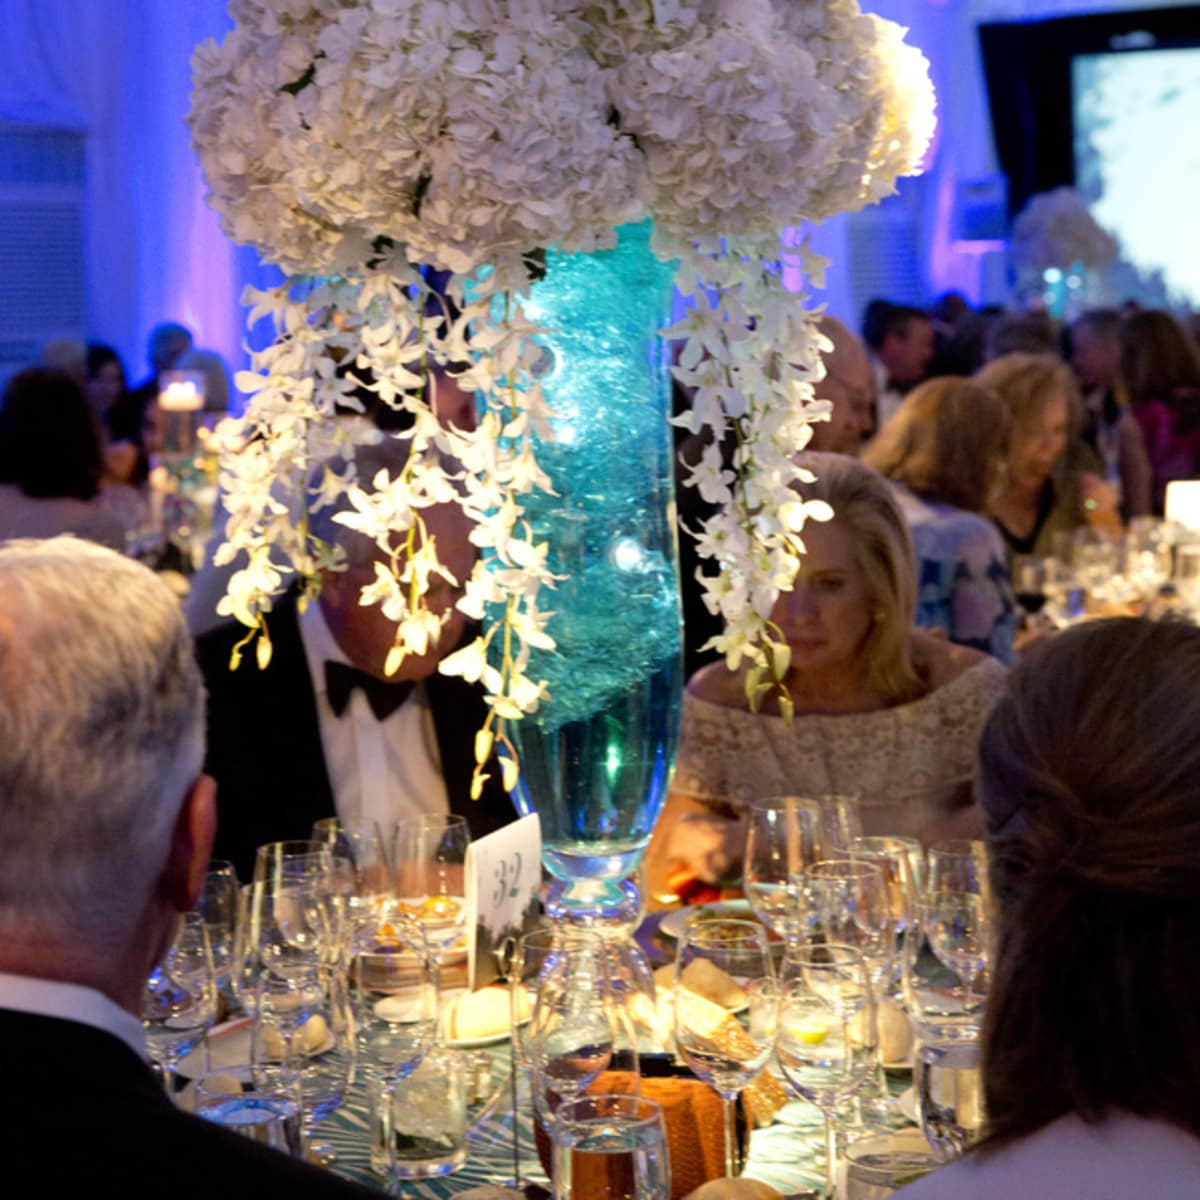 Houston, Zoo Ball Aquatic Affair, April 2017, flowers